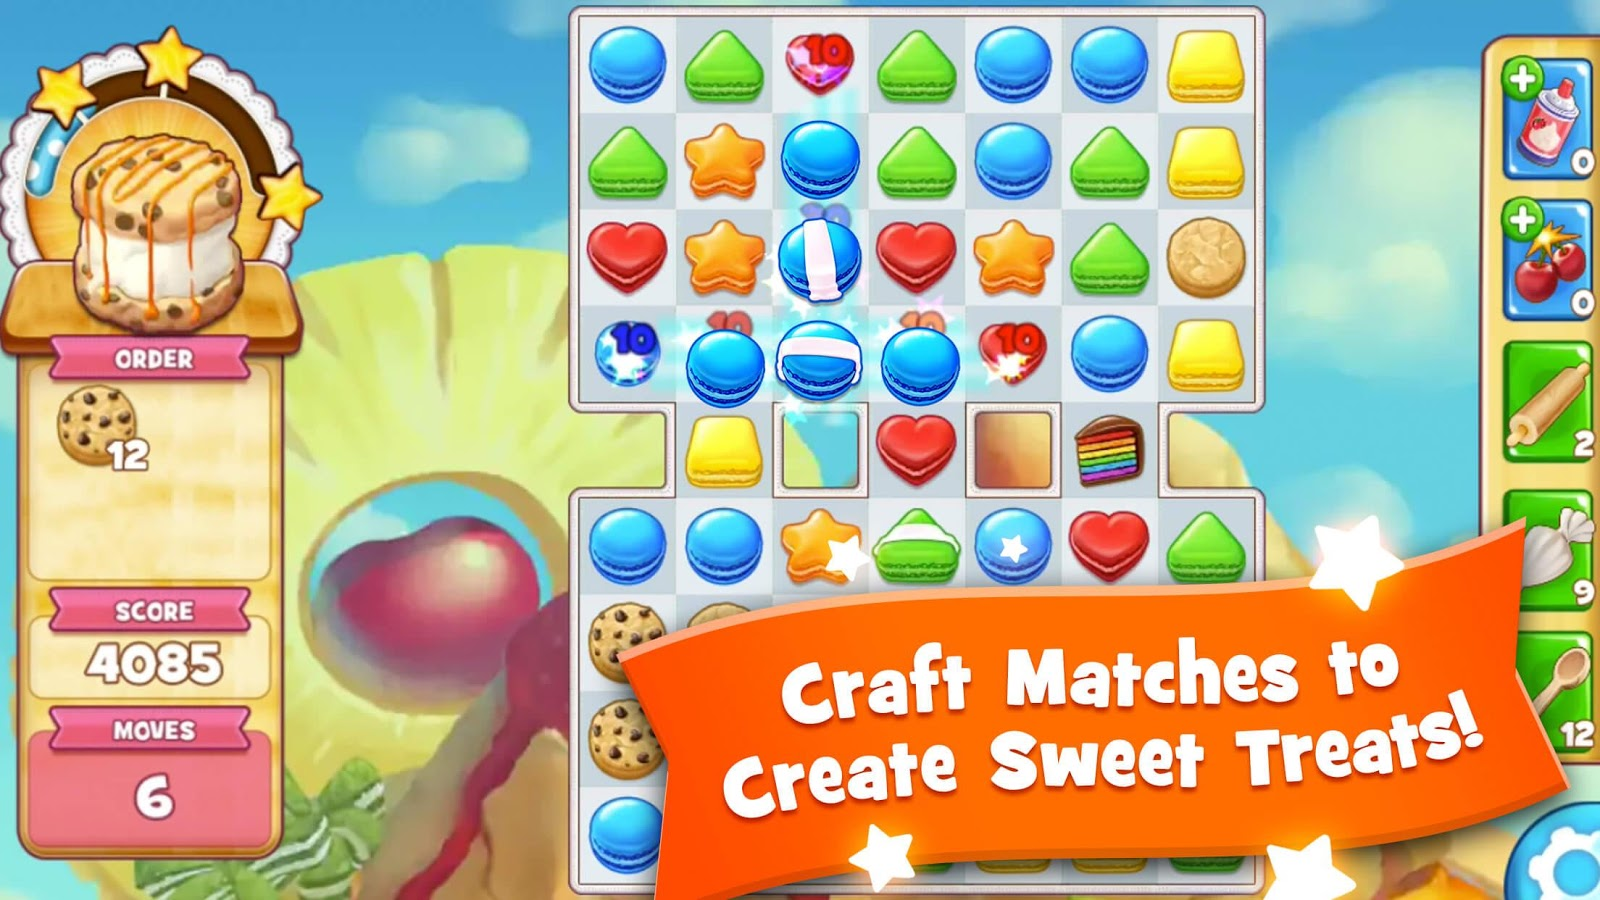 Cookie Jam - Match 3 Games & Free Puzzle Game Screenshot 1